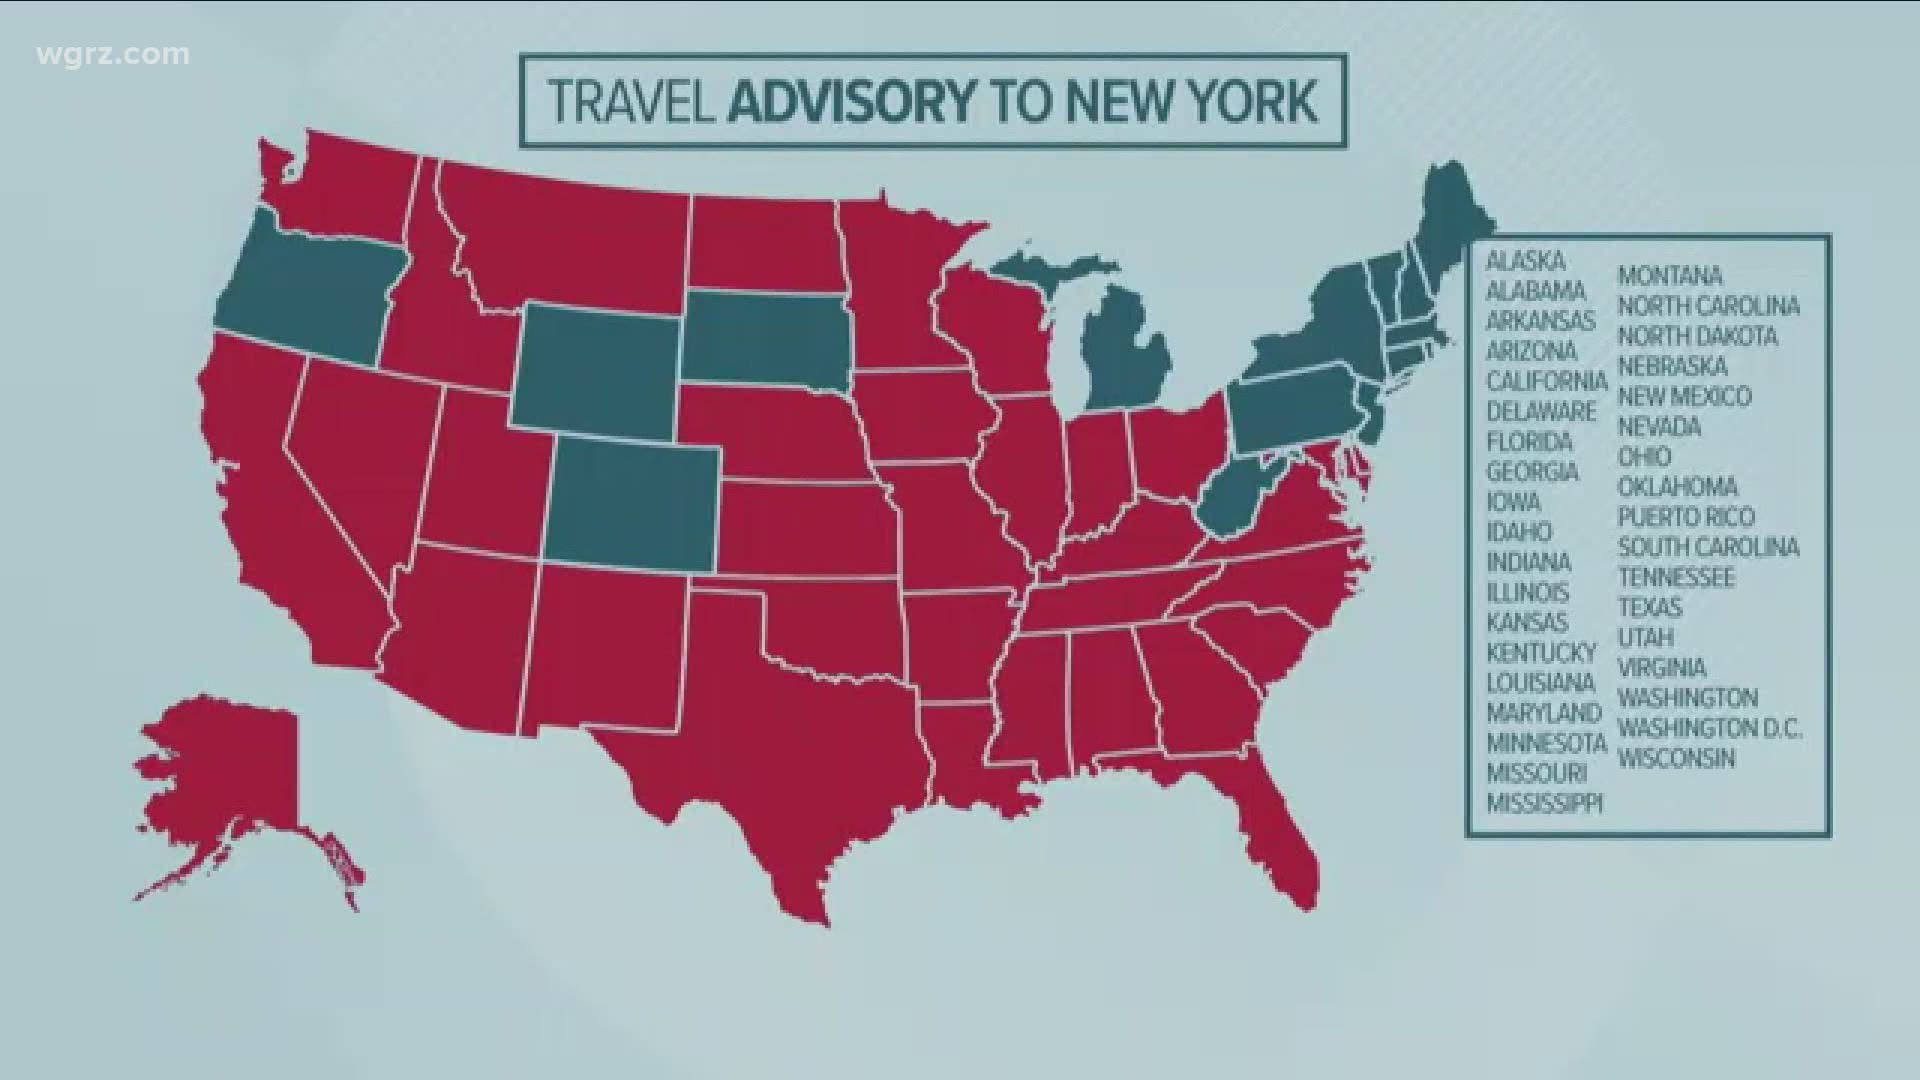 Nys Travel Advisory And Restrictions At The U S And Canadian Border Linger Wgrz Com